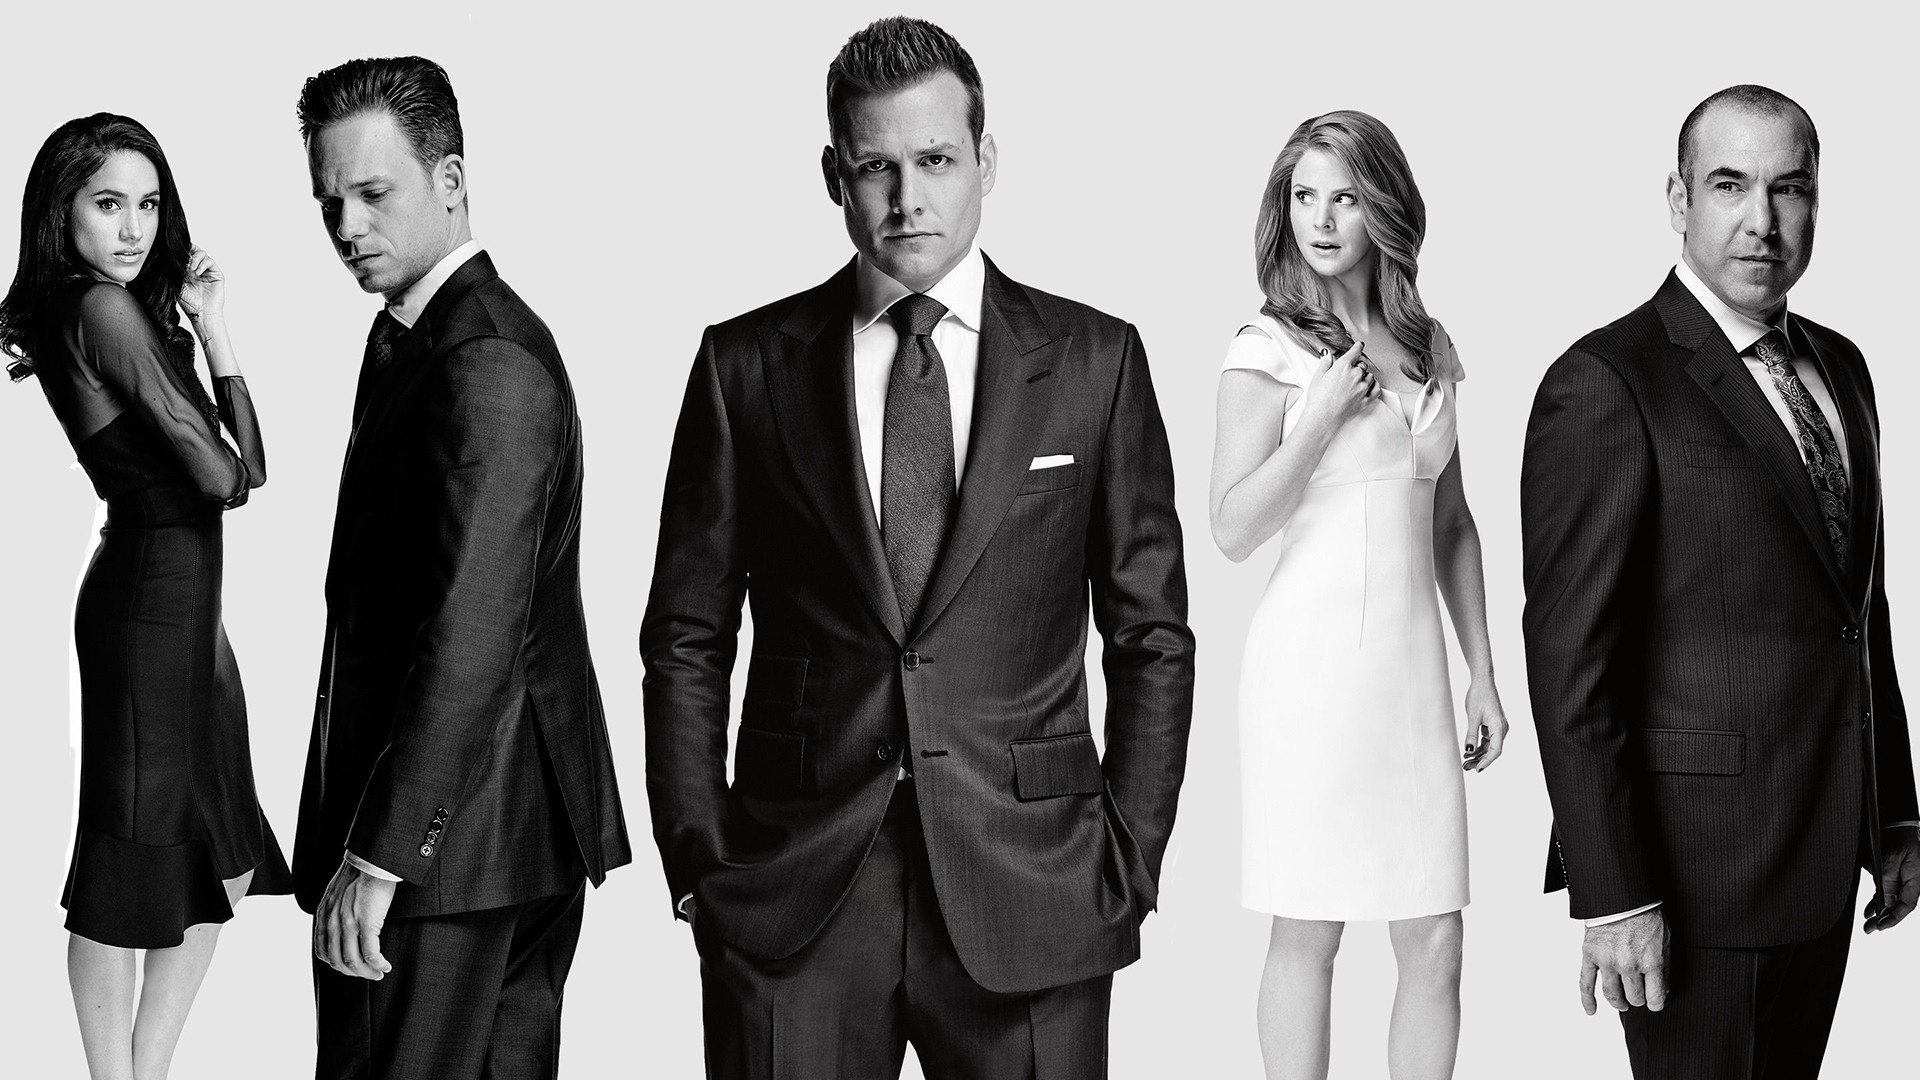 suits usa 1072012 hd wallpaper backgrounds download suits usa 1072012 hd wallpaper